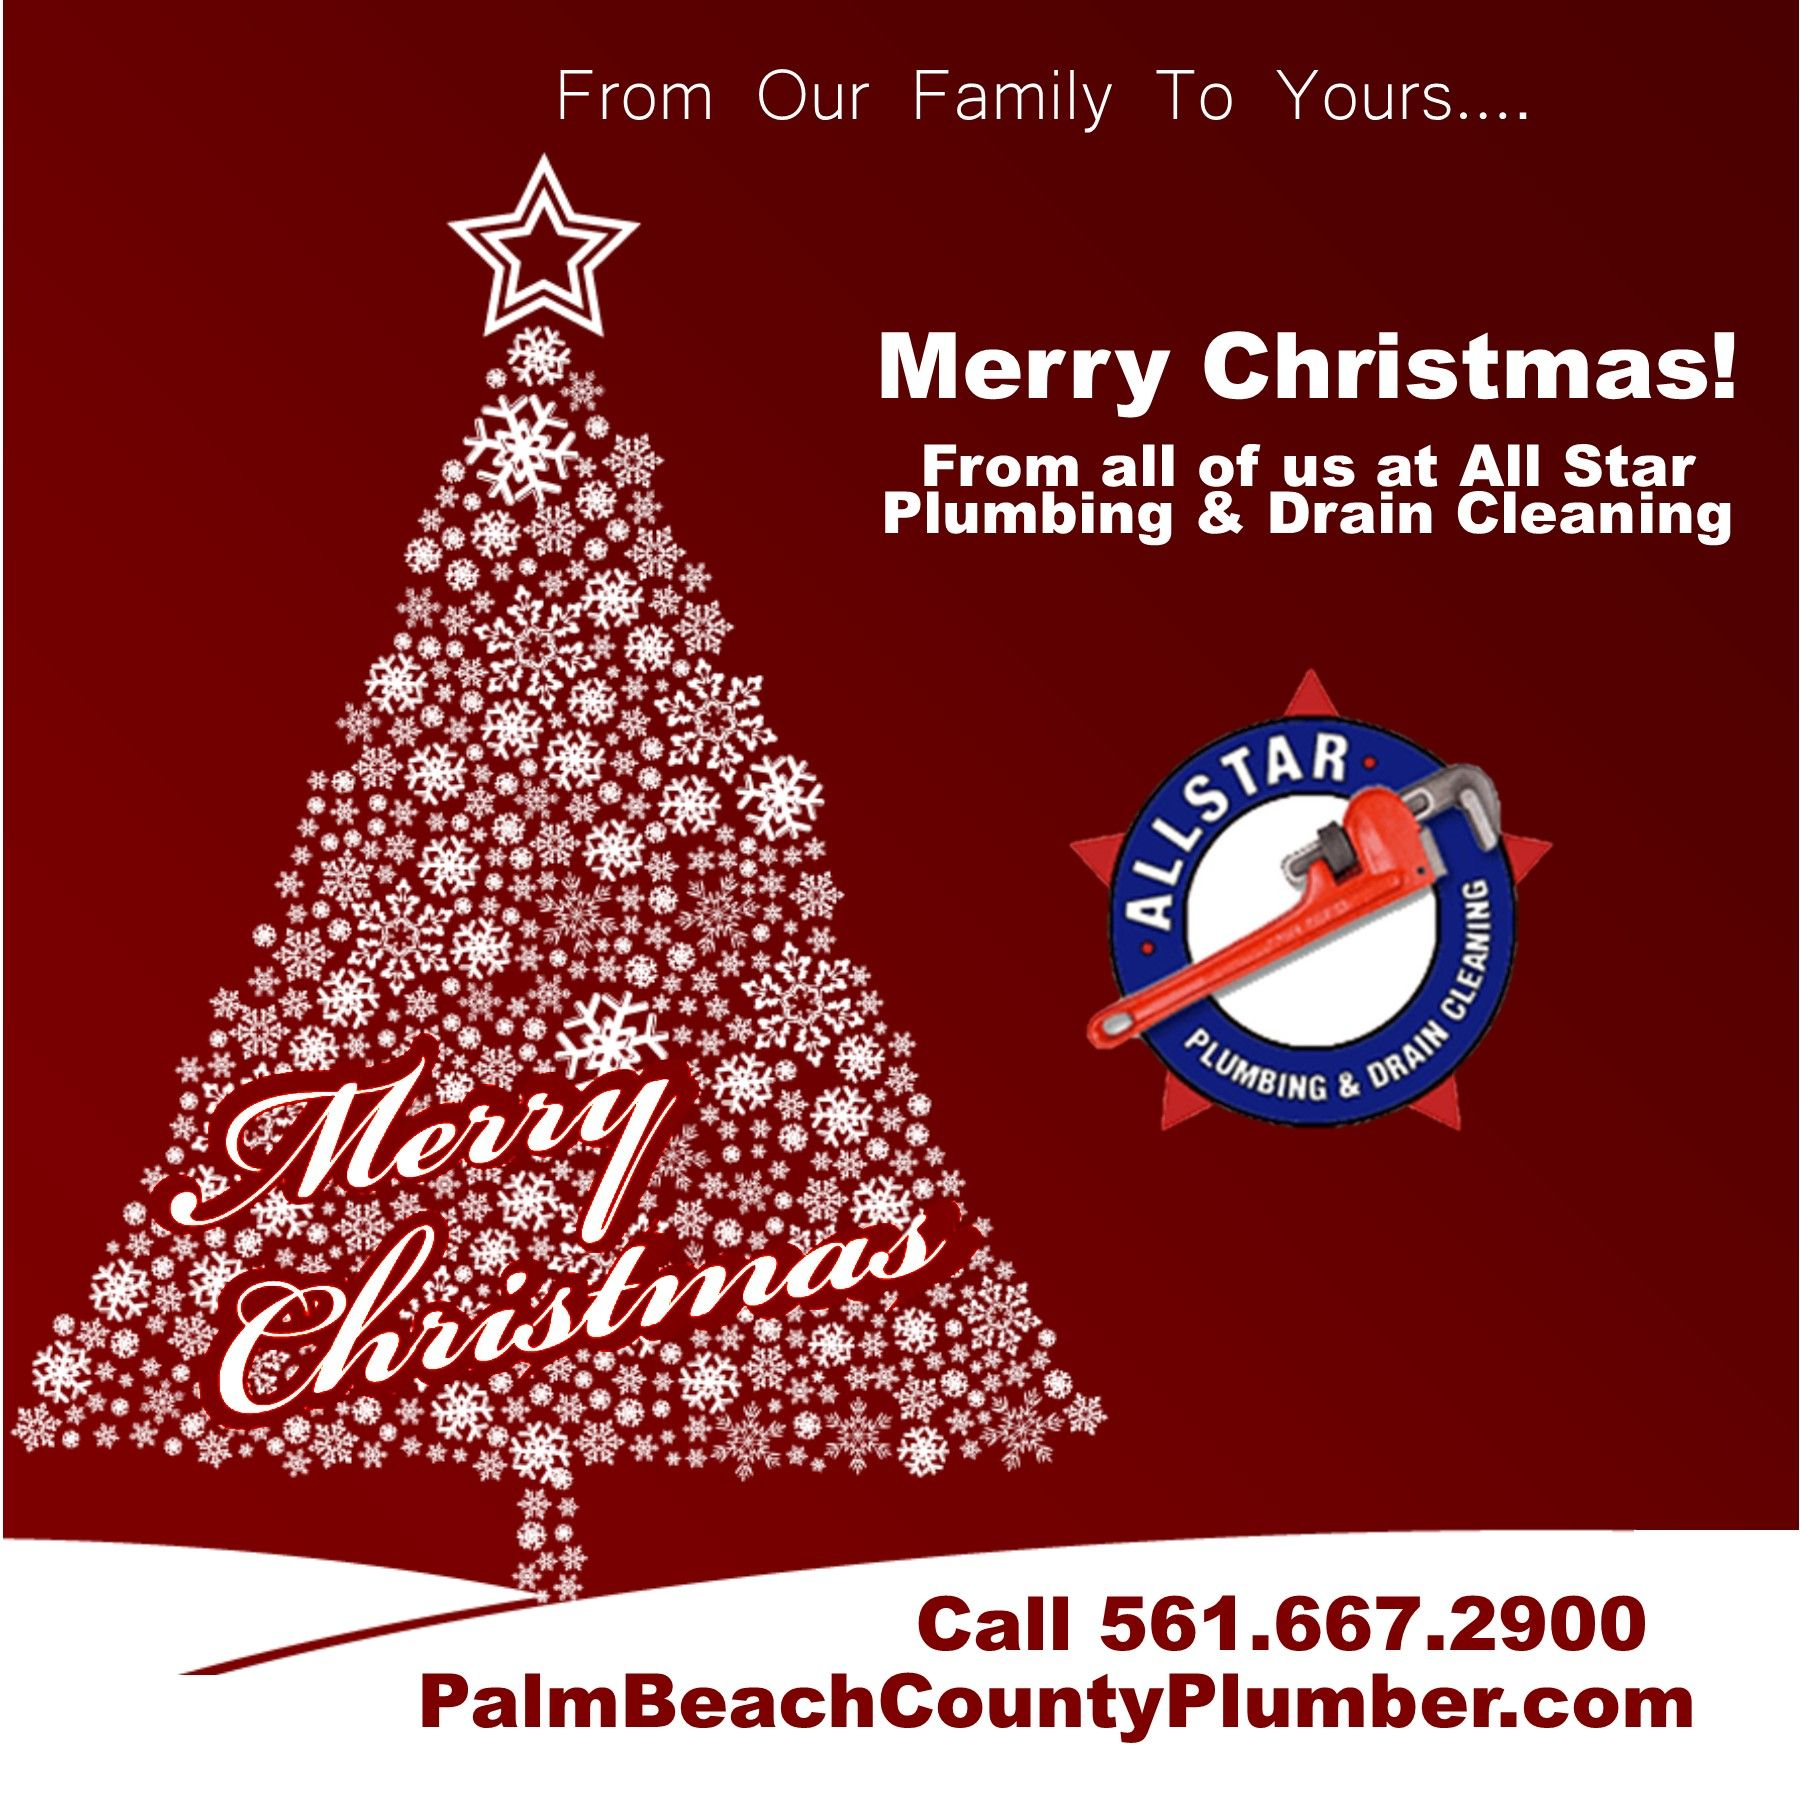 Merry Christmas From All Of Us At All Star Plumbing Drain